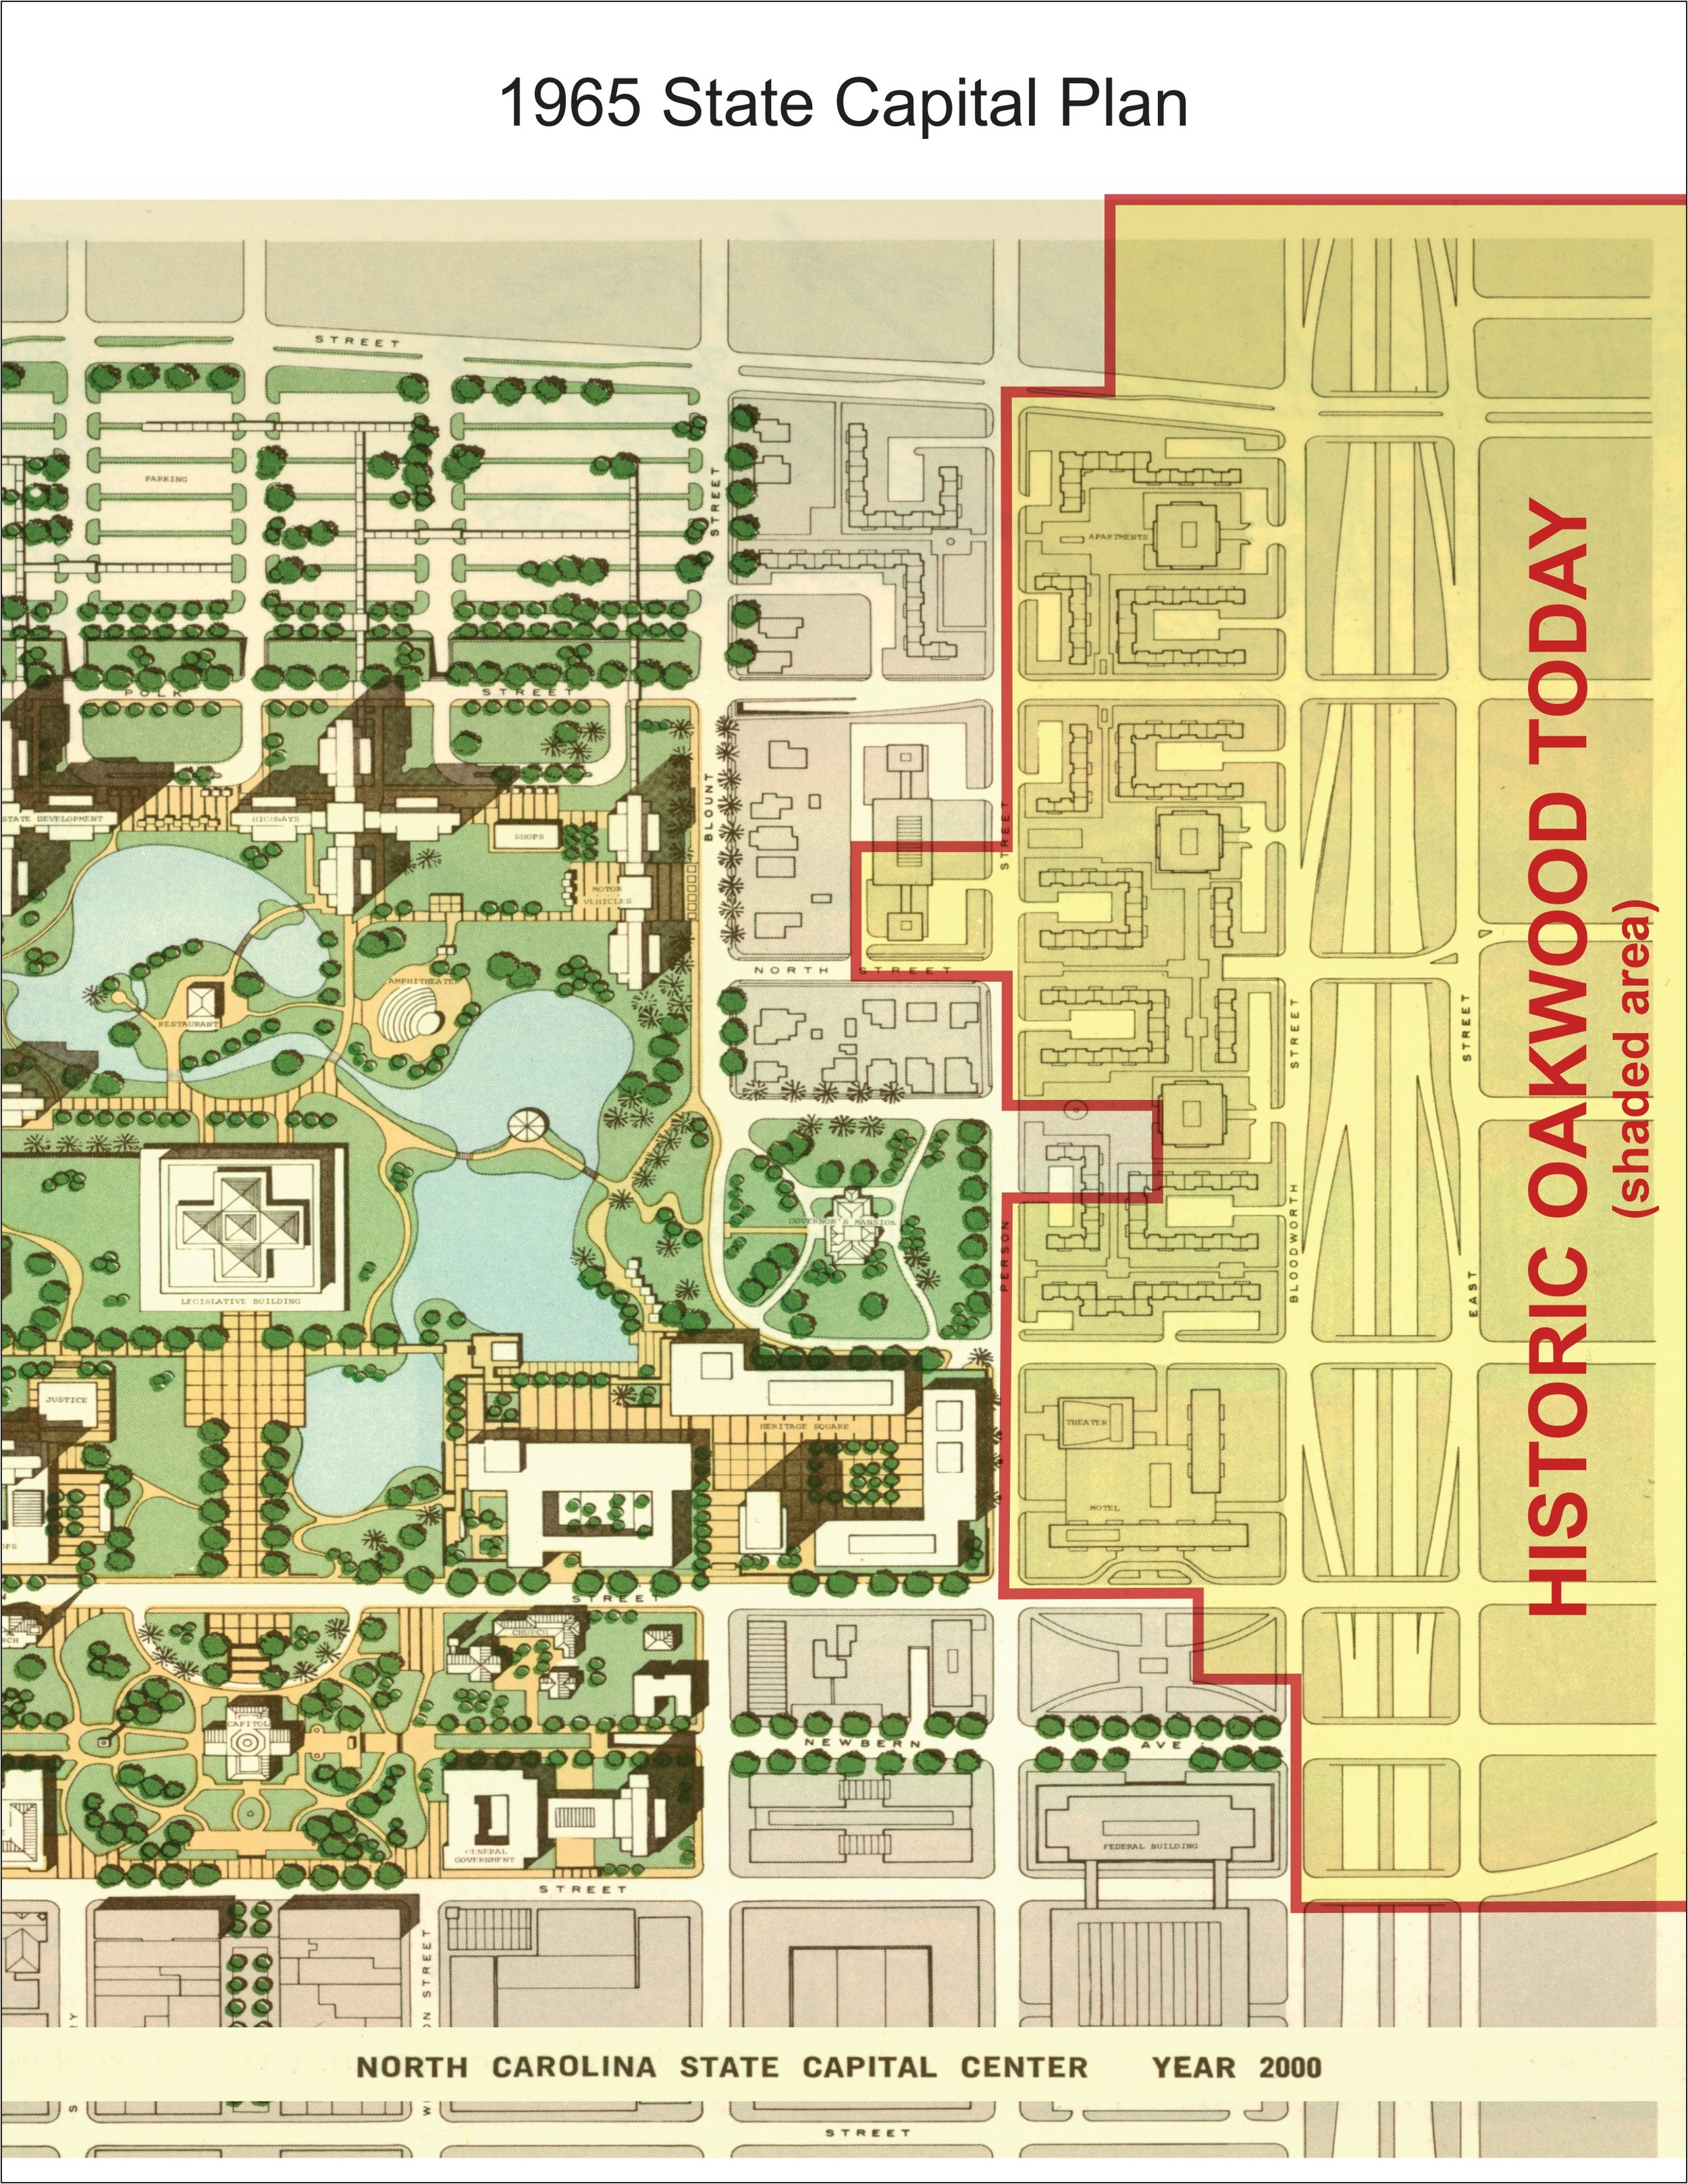 1965 State Capital Plan claiming nearly half of today's Oakwood for development.